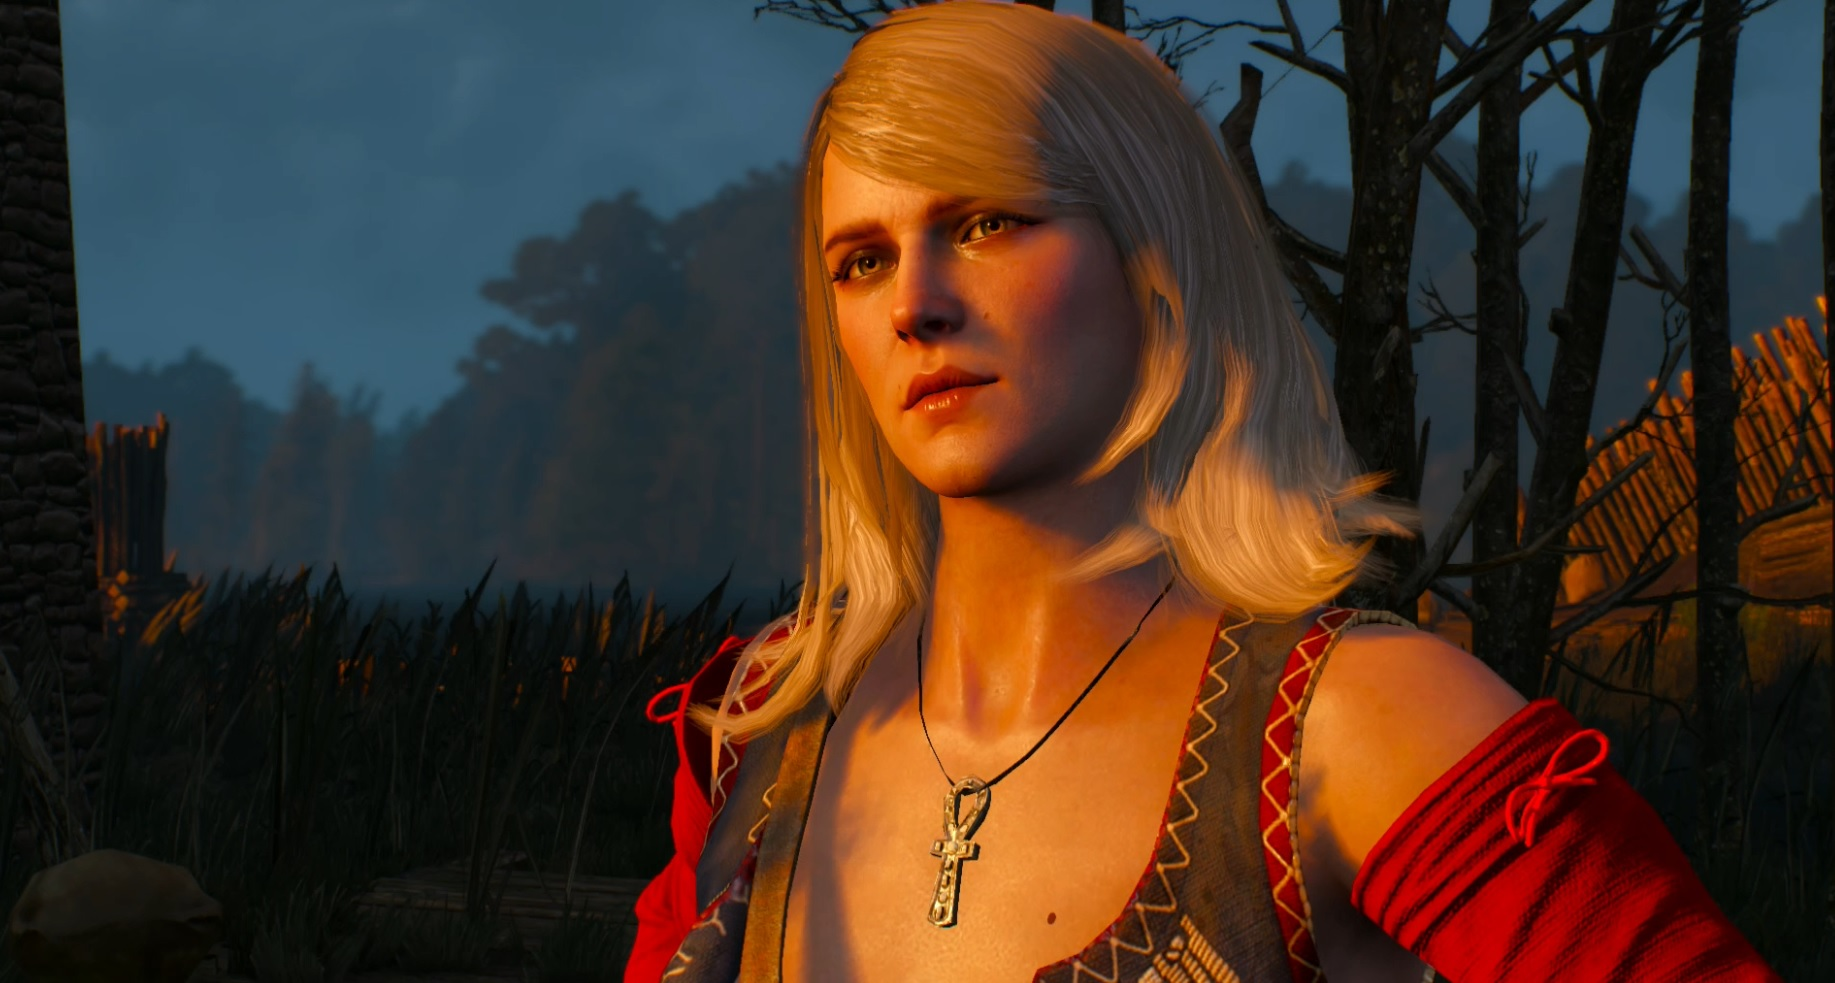 Soluzione Romance - The Witcher 3: Wild Hunt